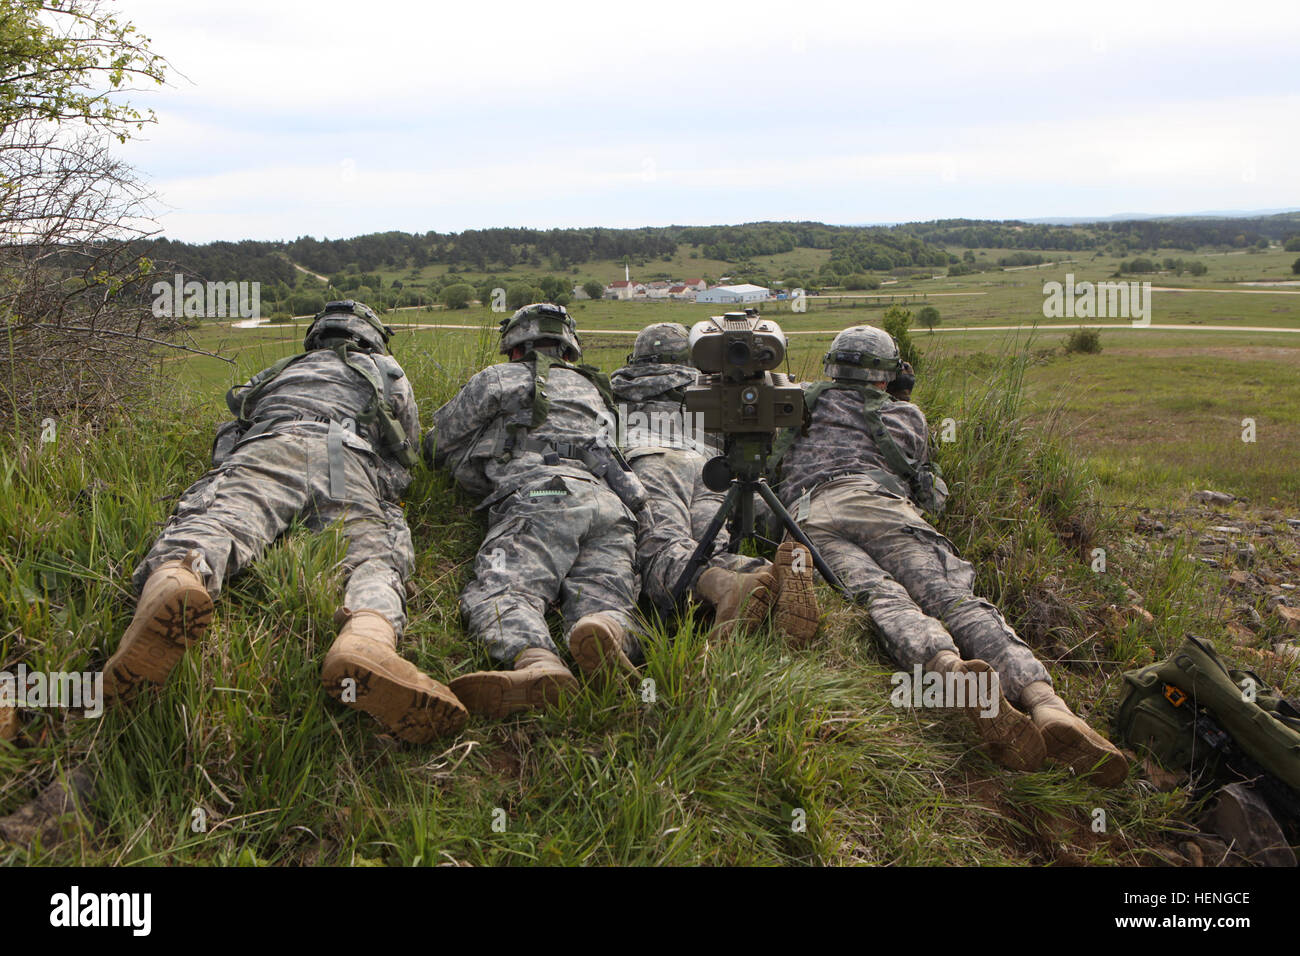 U.S. Soldiers assigned to 2nd Battalion, 5th Cavalry Regiment, 1st Brigade Combat Team, 1st Cavalry Division search Stock Photo